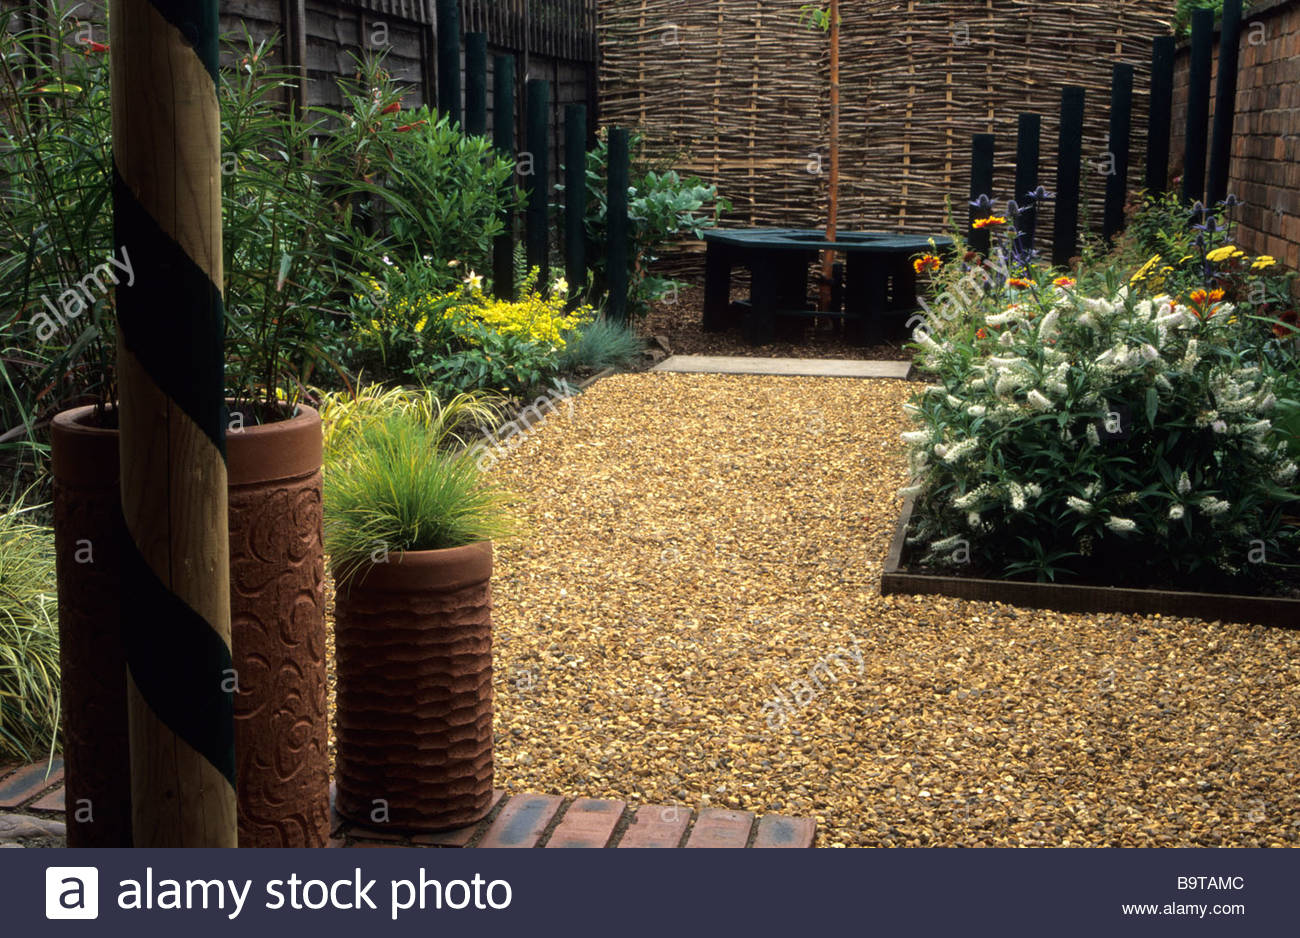 Small Town Garden With Gravel Path Leading To Octagonal